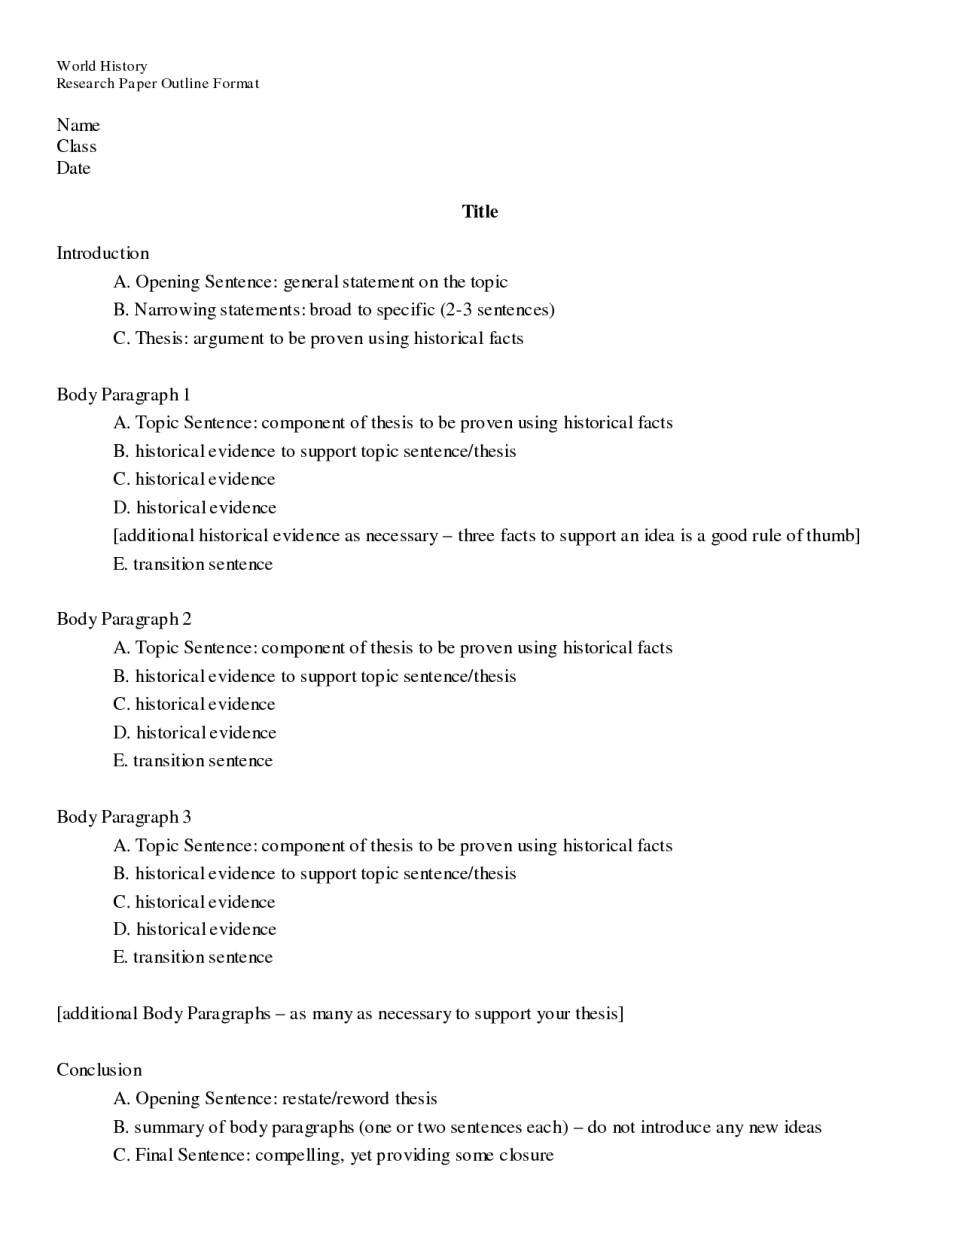 008 Research Paper Outline Impressive Template Word Sample Apa Google Docs 960